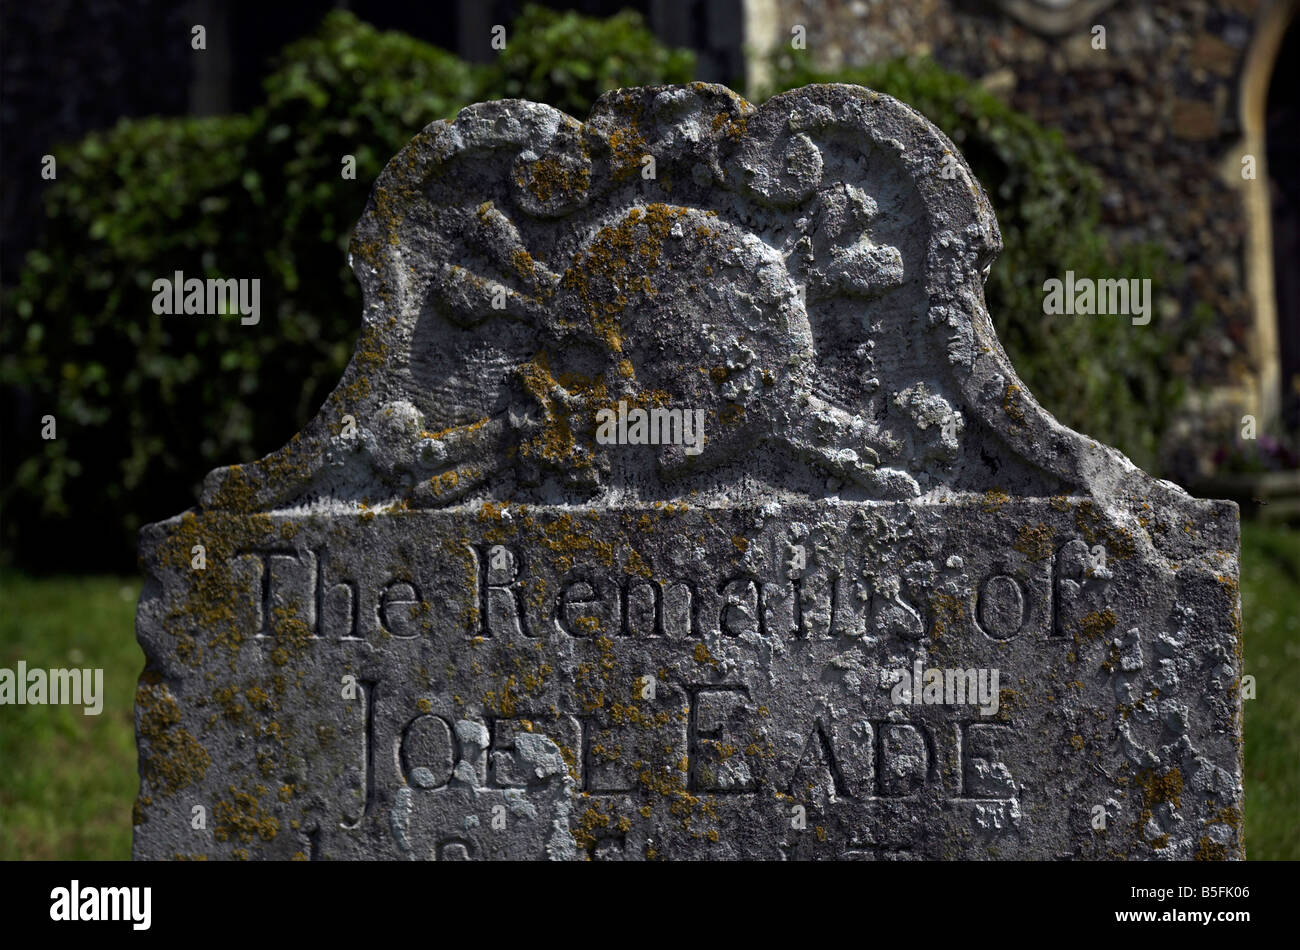 An old gravestone with a skull and crossbones motif in Saxmundham - Stock Image